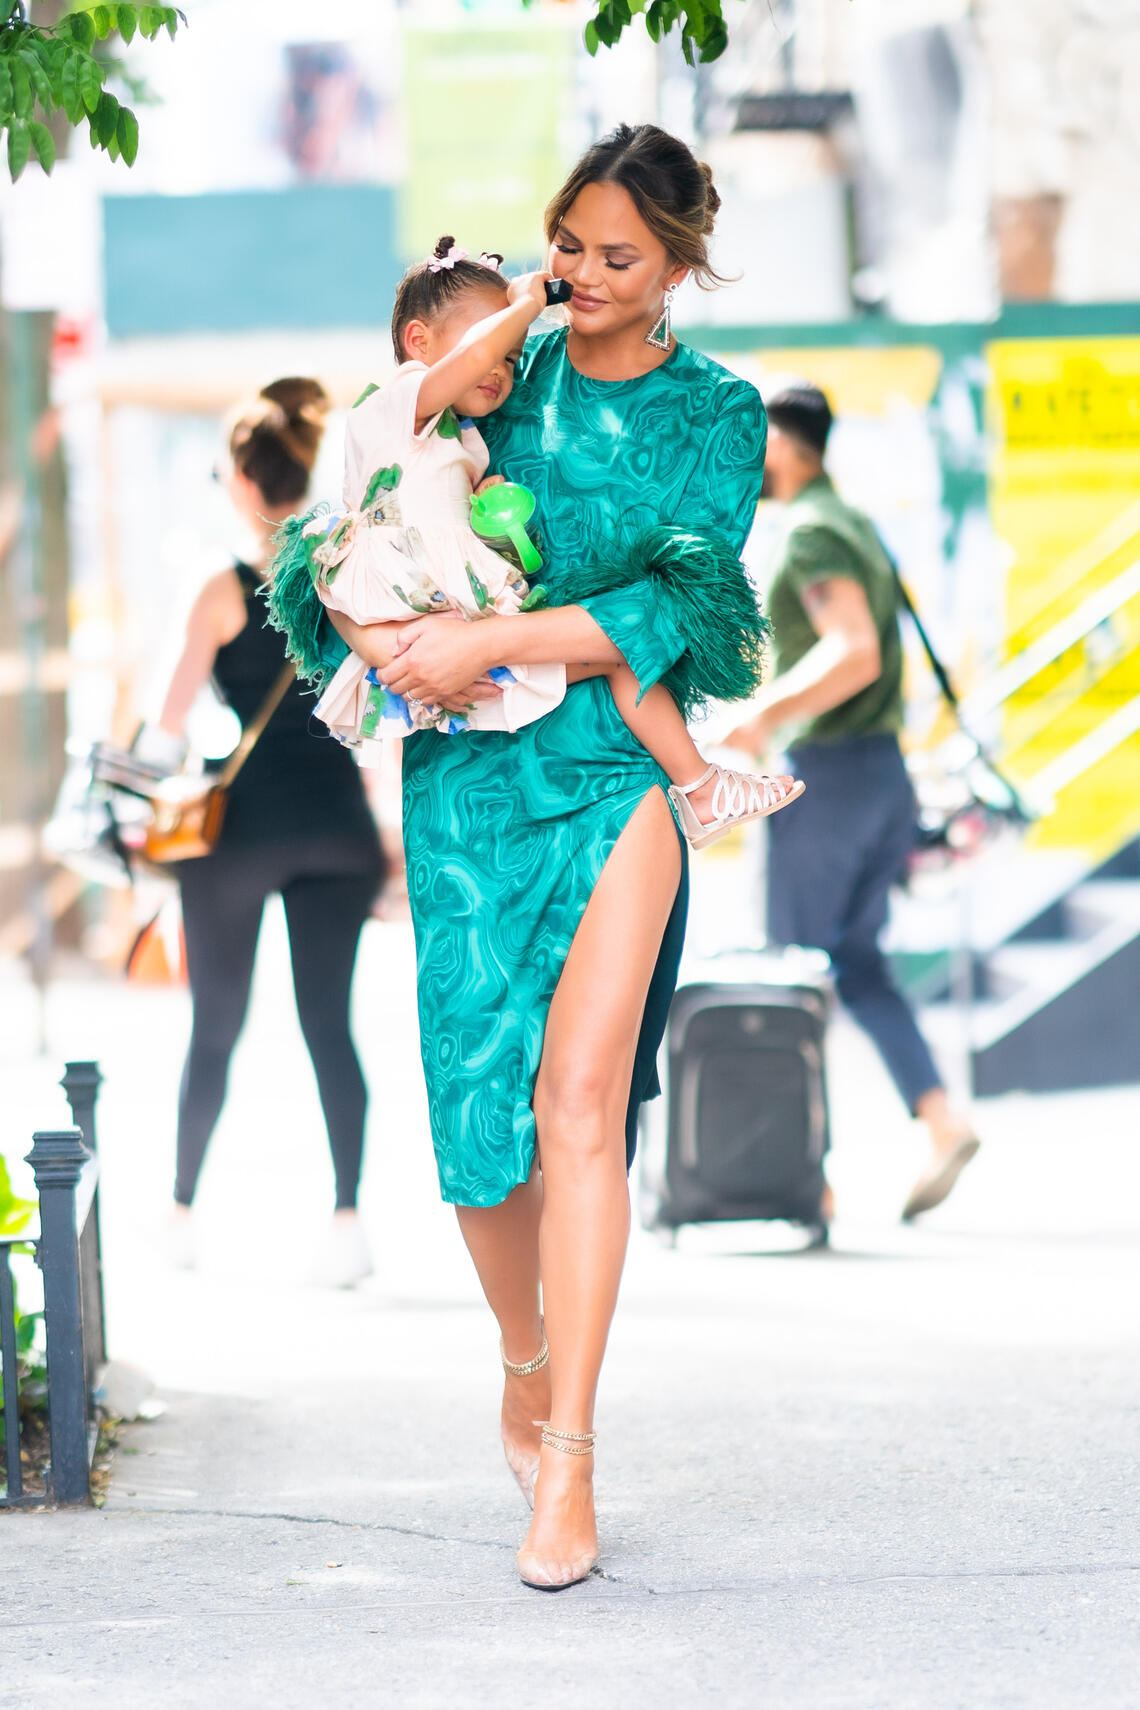 NEW YORK, NEW YORK - JUNE 24: Chrissy Teigen (R) and Luna Stephens are seen in Little Italy on June 24, 2019 in New York City. (Photo by Gotham/GC Images)